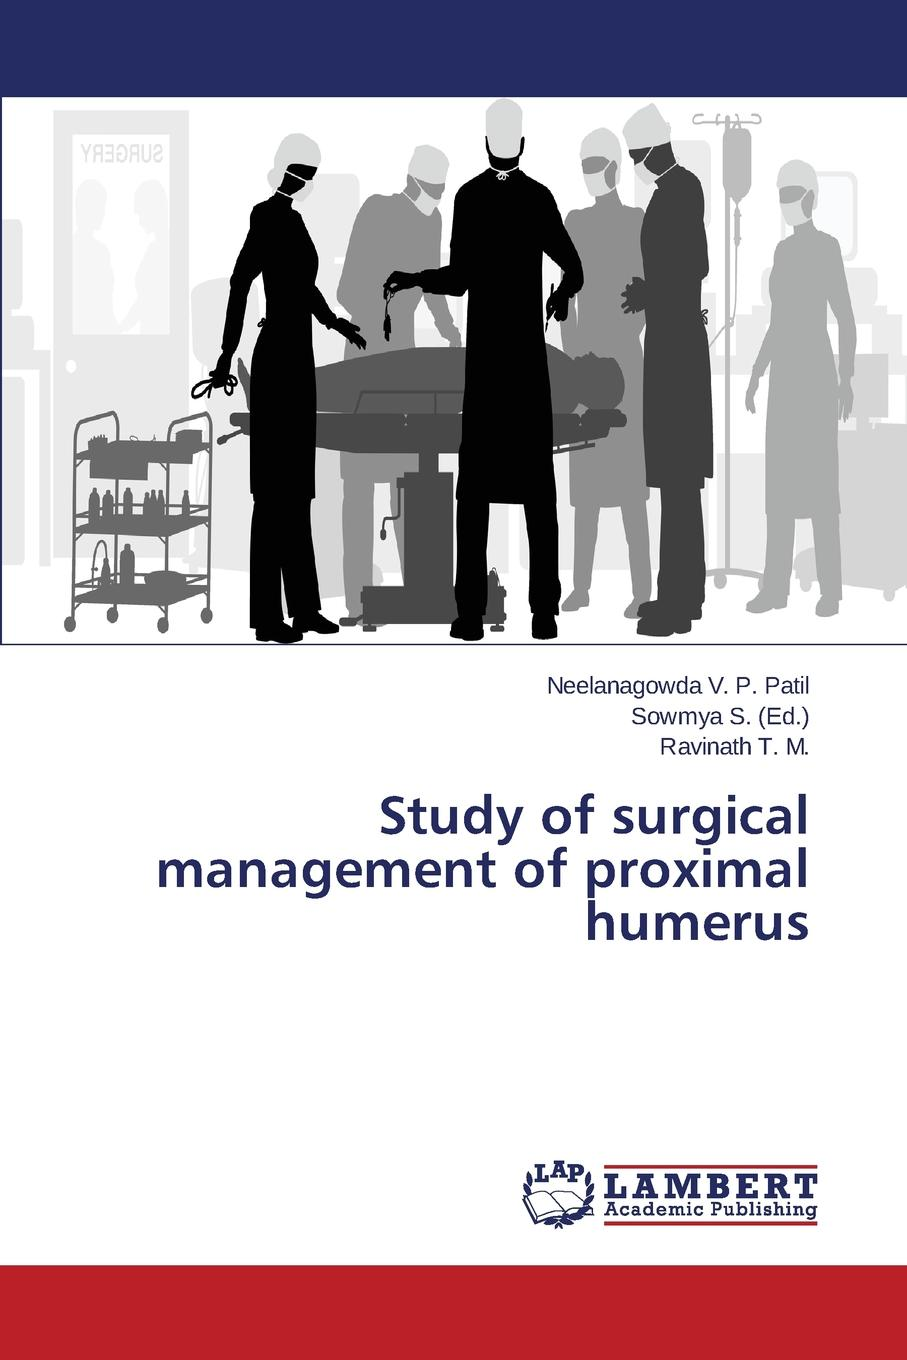 V. P. Patil Neelanagowda, T. M. Ravinath Study of Surgical Management of Proximal Humerus storage of mango treated with calcium chloride